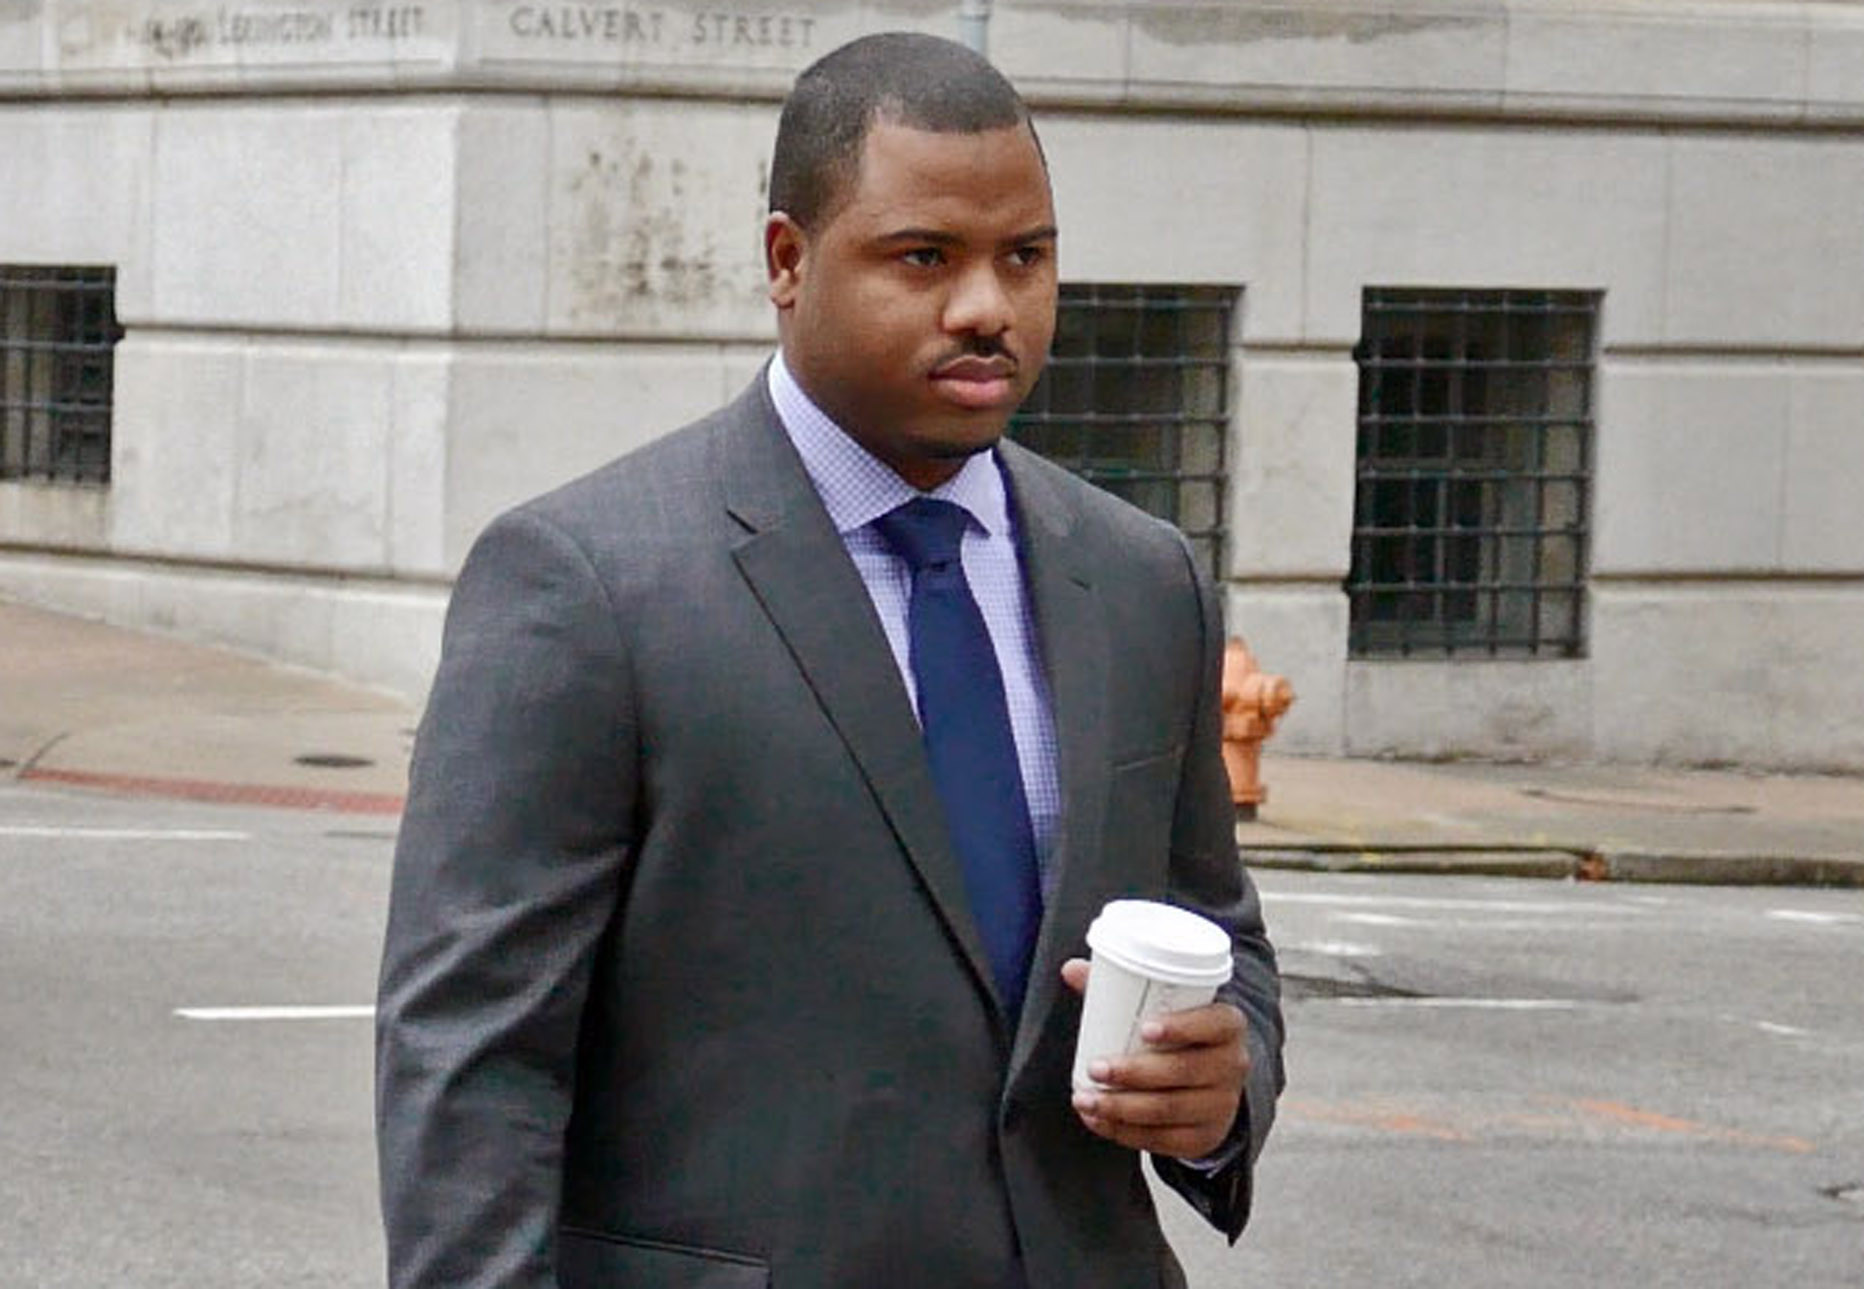 Prosecutors see ficer Porter as both a liar and a potential